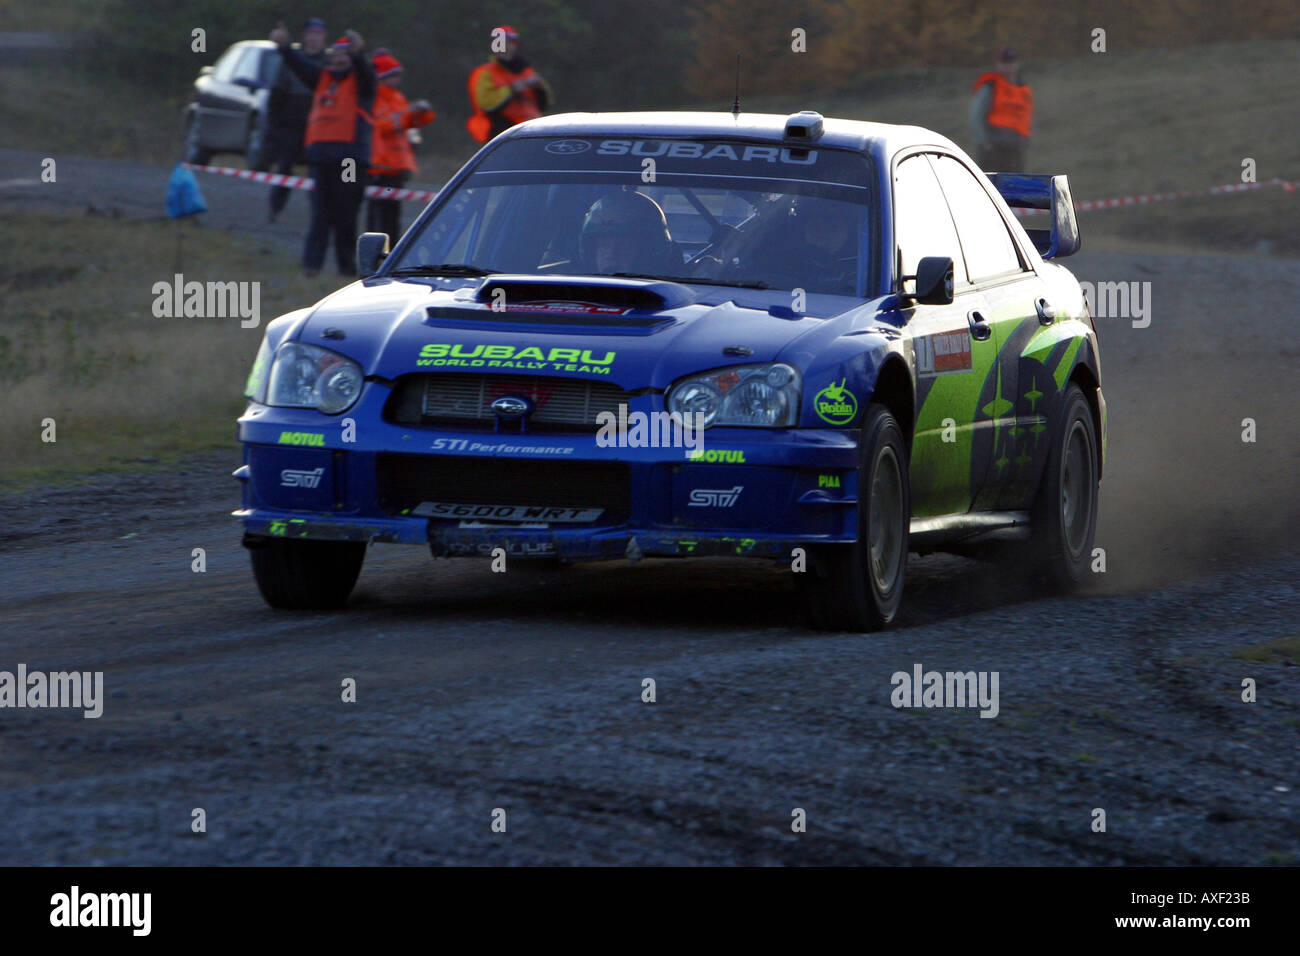 petter solberg wrc rally champion at speed in the welsh forests - Stock Image